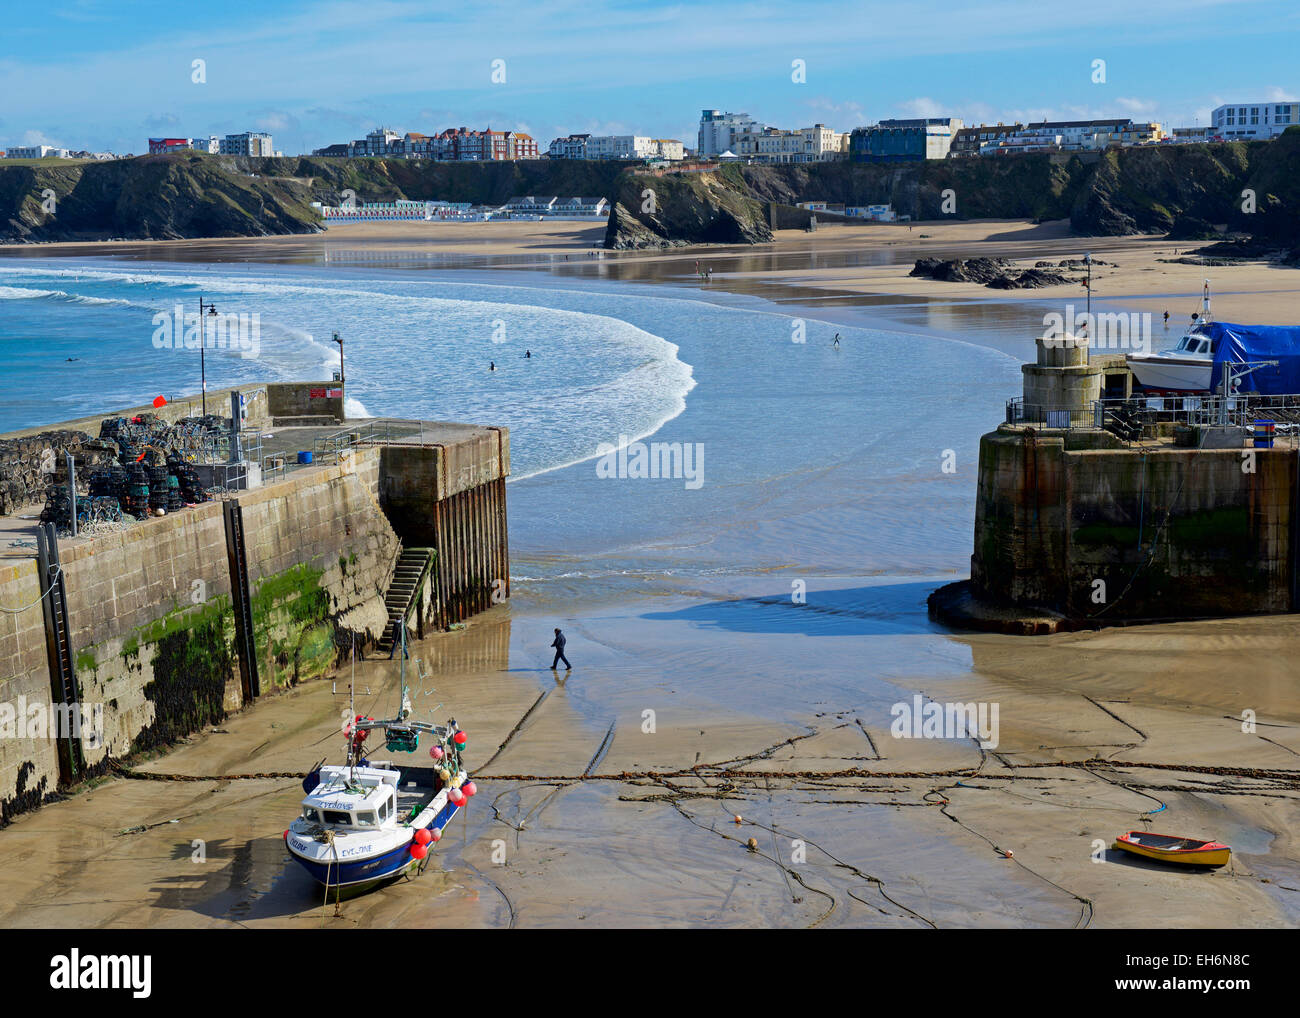 The harbour, Newquay, Cornwall, England UK - Stock Image